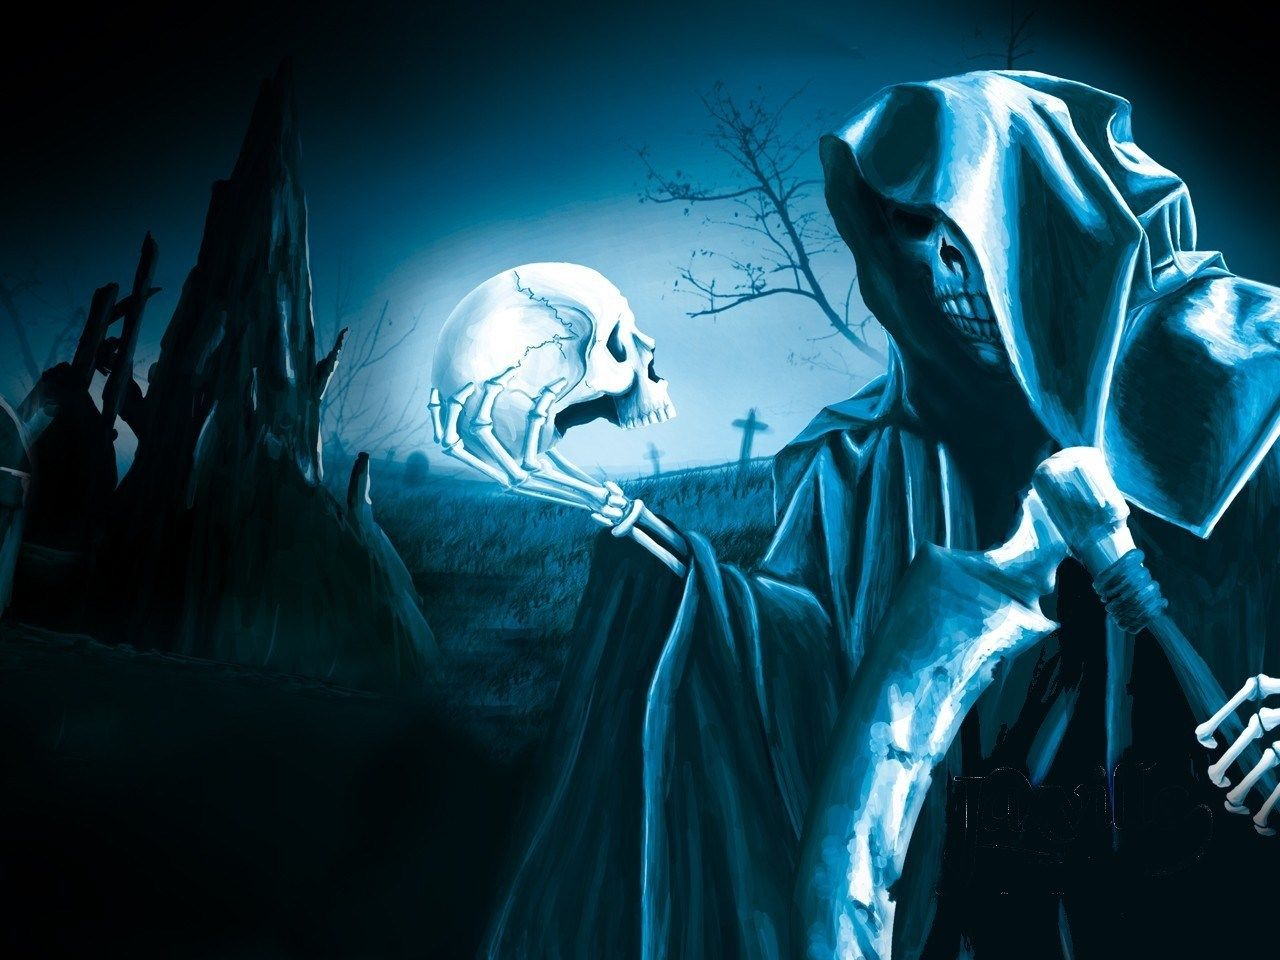 Grim Reaper Skull Dark Wallpaper 2021 Live Wallpaper Hd Don T Fear The Reaper Grim Reaper Skull Wallpaper